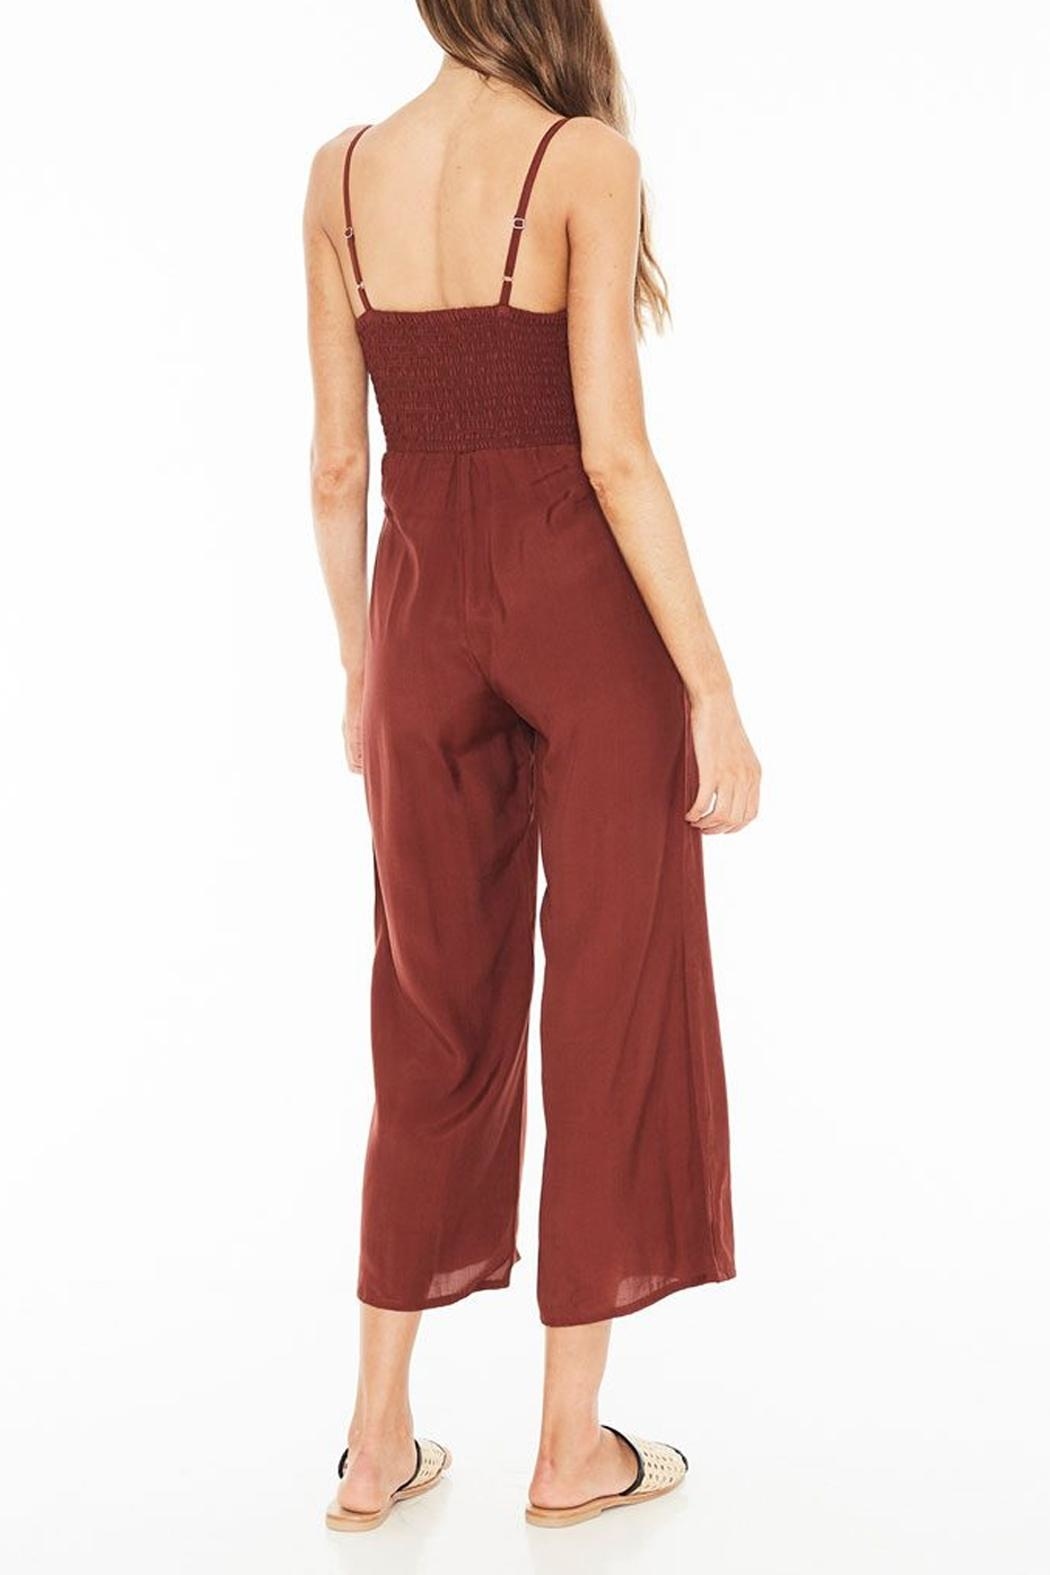 Faithfull The Brand Presley Jumpsuit - Side Cropped Image